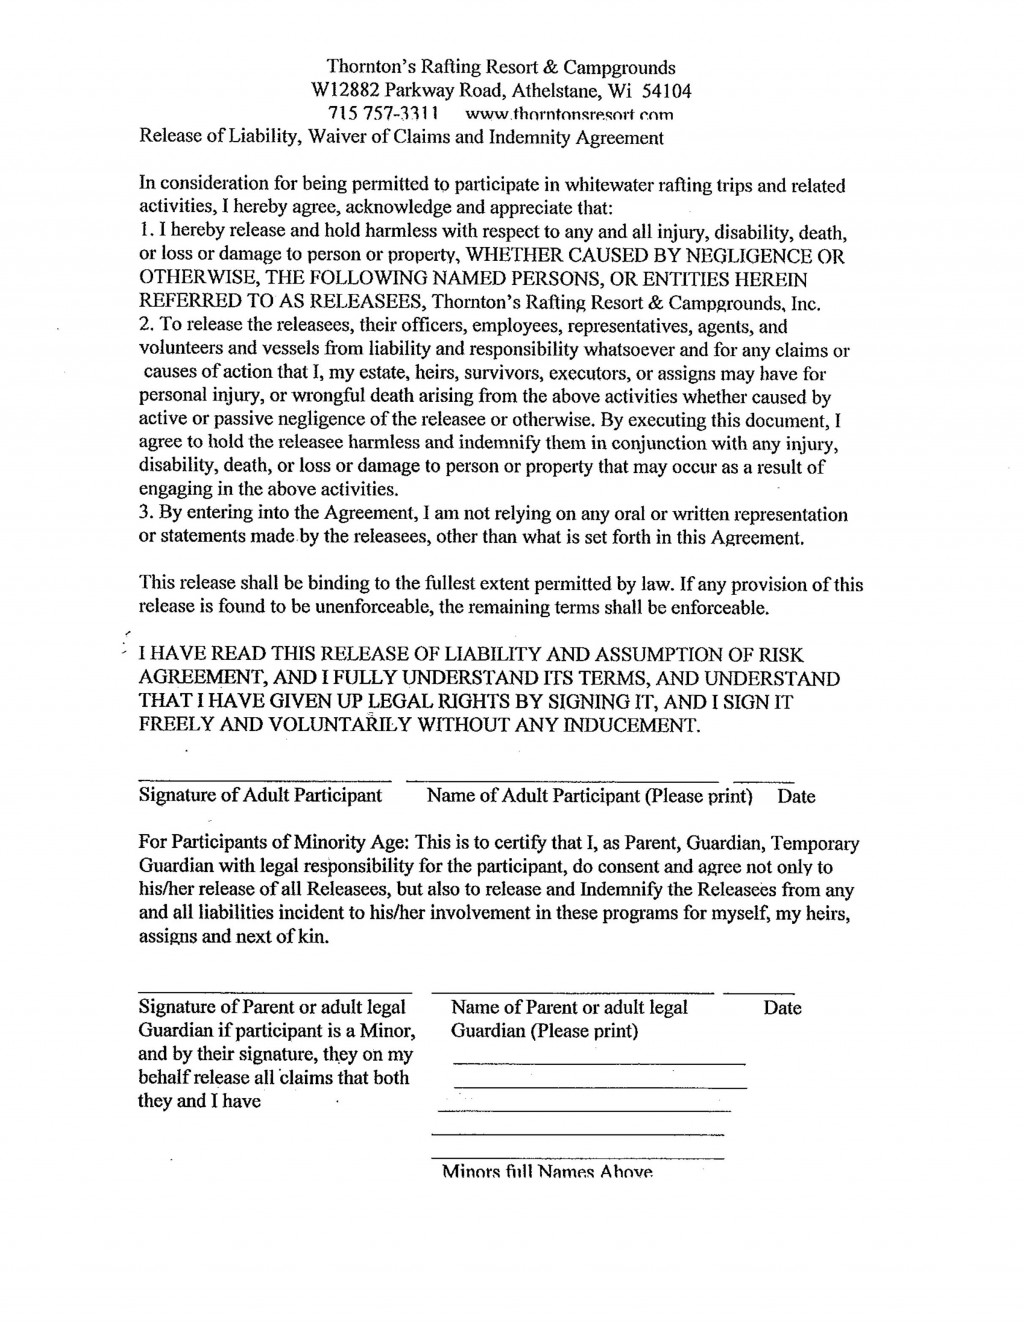 004 Singular Liability Release Form Template Image  Free GeneralLarge